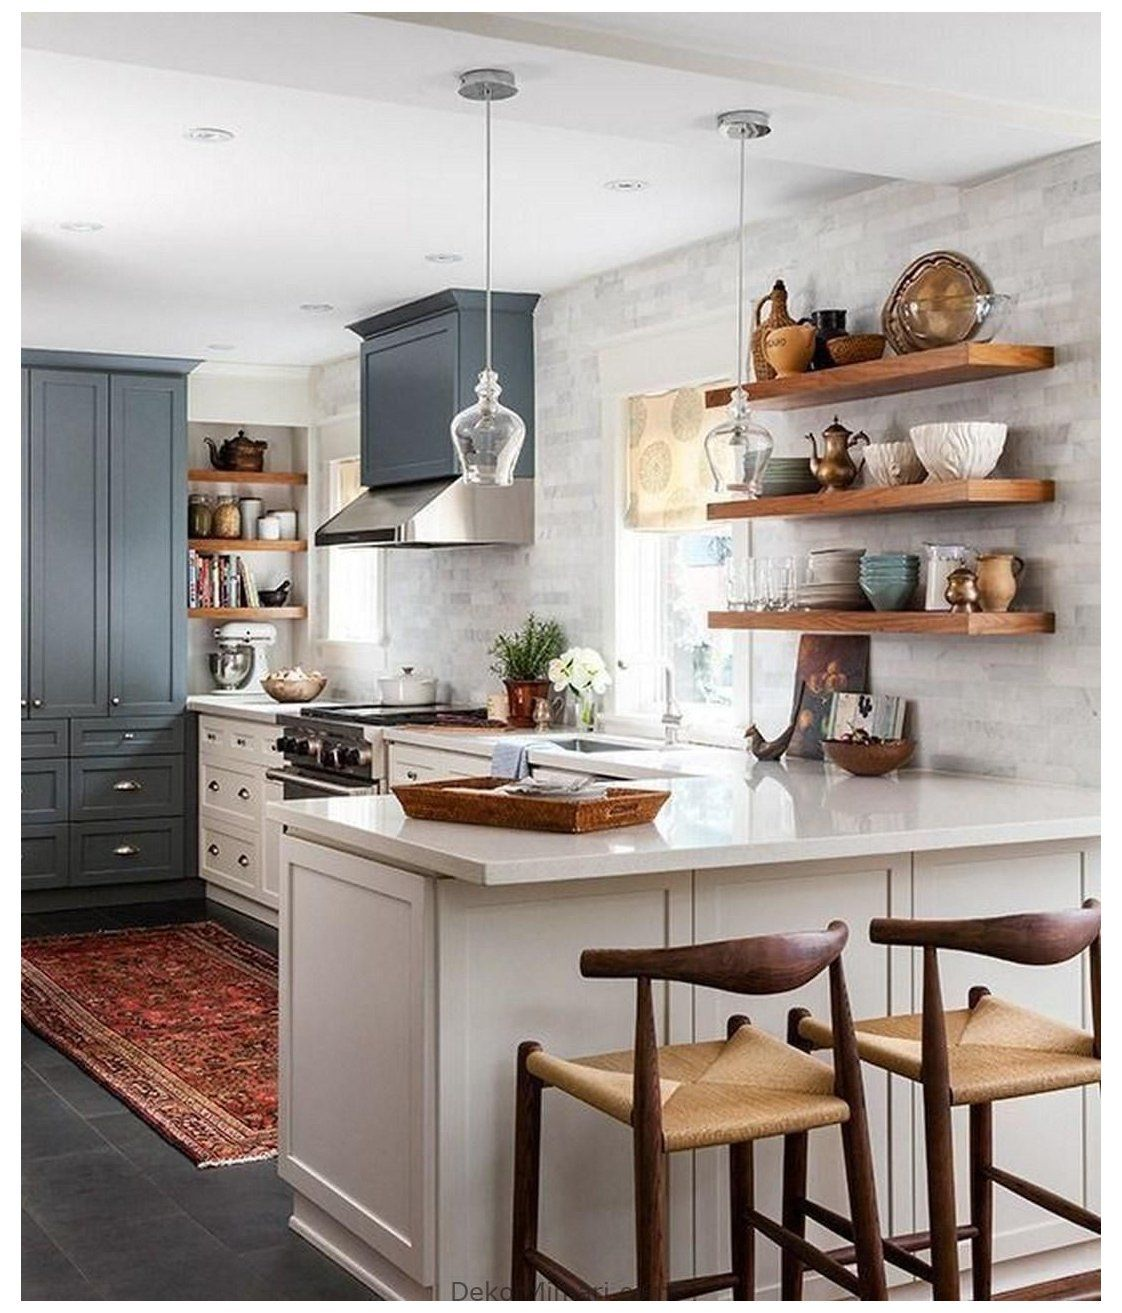 Open Kitchen Design Cozy And Classic Open Kitchen Kitchen Ideas For Small Spa Kitchen Remodel Small Small Space Kitchen Open Concept Kitchen Living Room